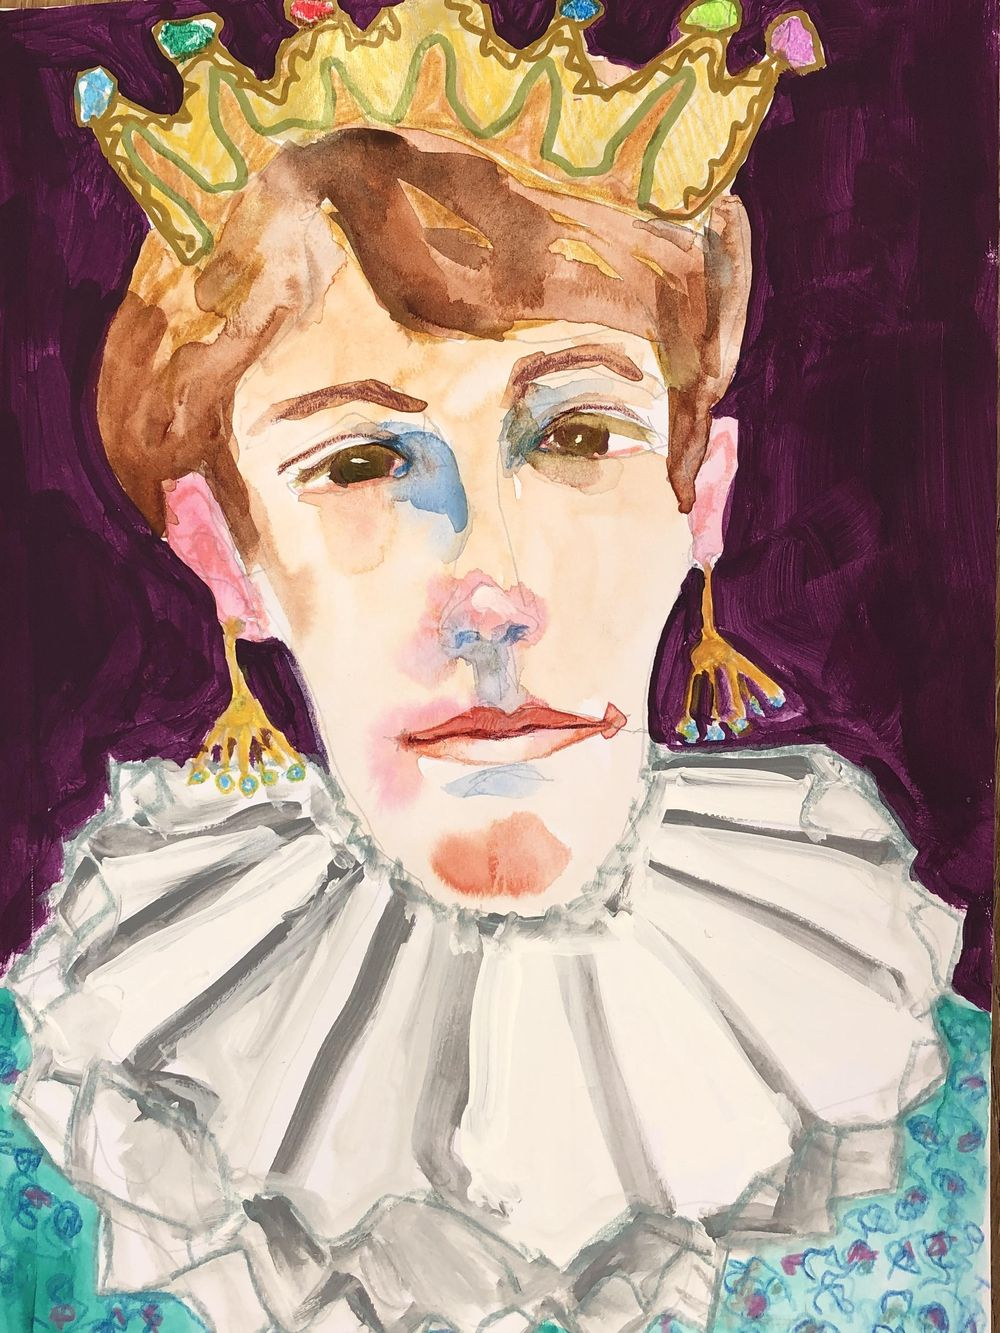 Mary/self portrait - image 1 - student project